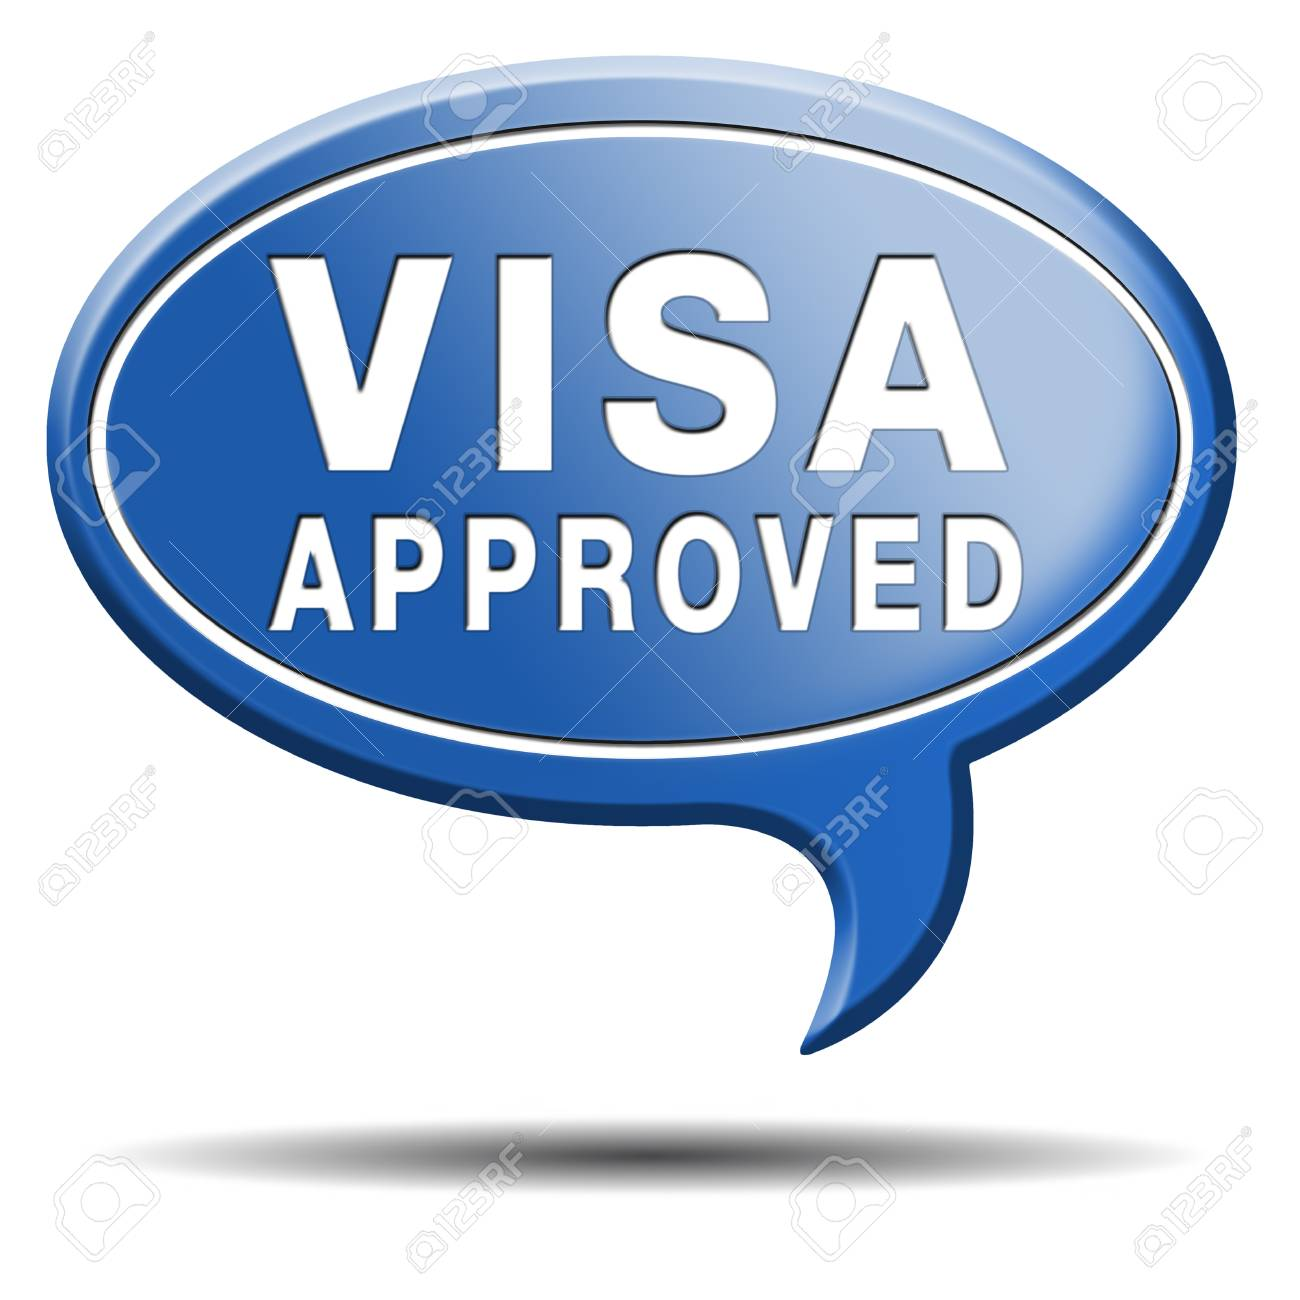 Visa approved immigration stamp for crossing the border passing visa approved immigration stamp for crossing the border passing customs for tourism and passport control approval biocorpaavc Choice Image